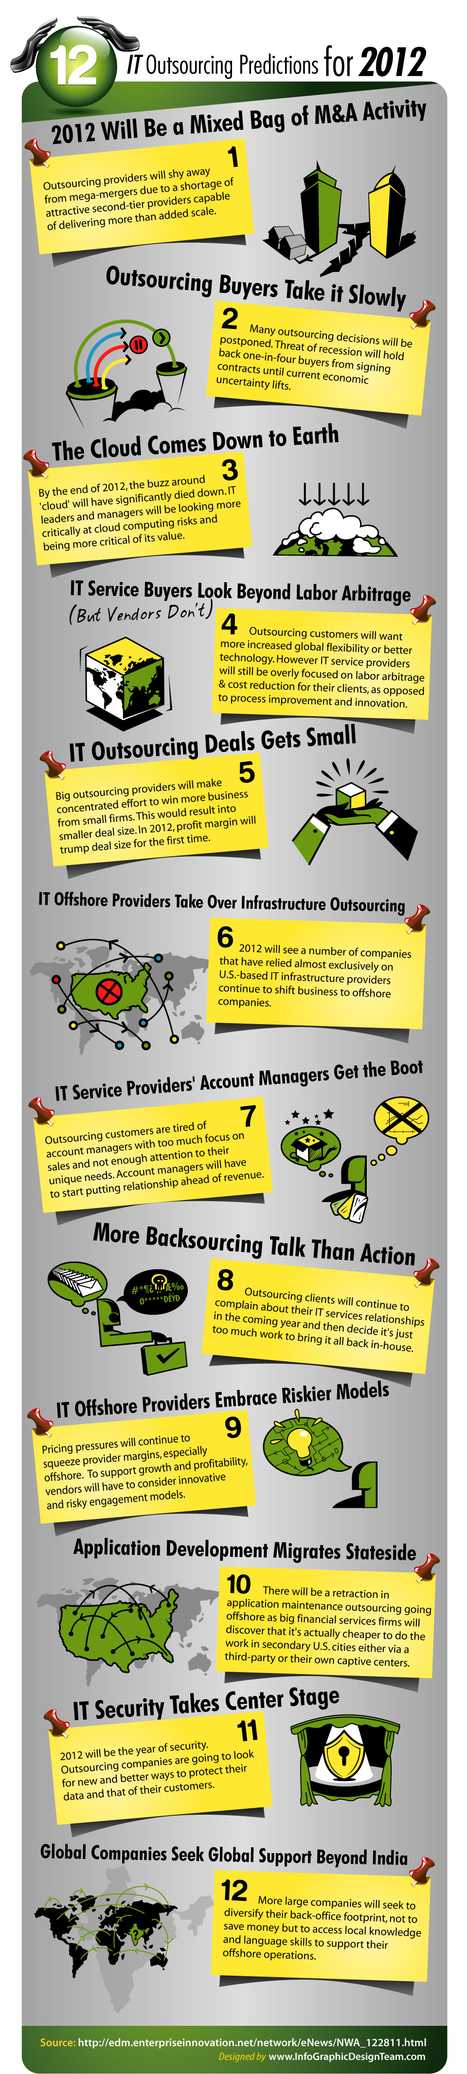 Infographic Design Team - 12 IT Outsourcing Predictions for 2012 | Marketing & Webmarketing | Scoop.it